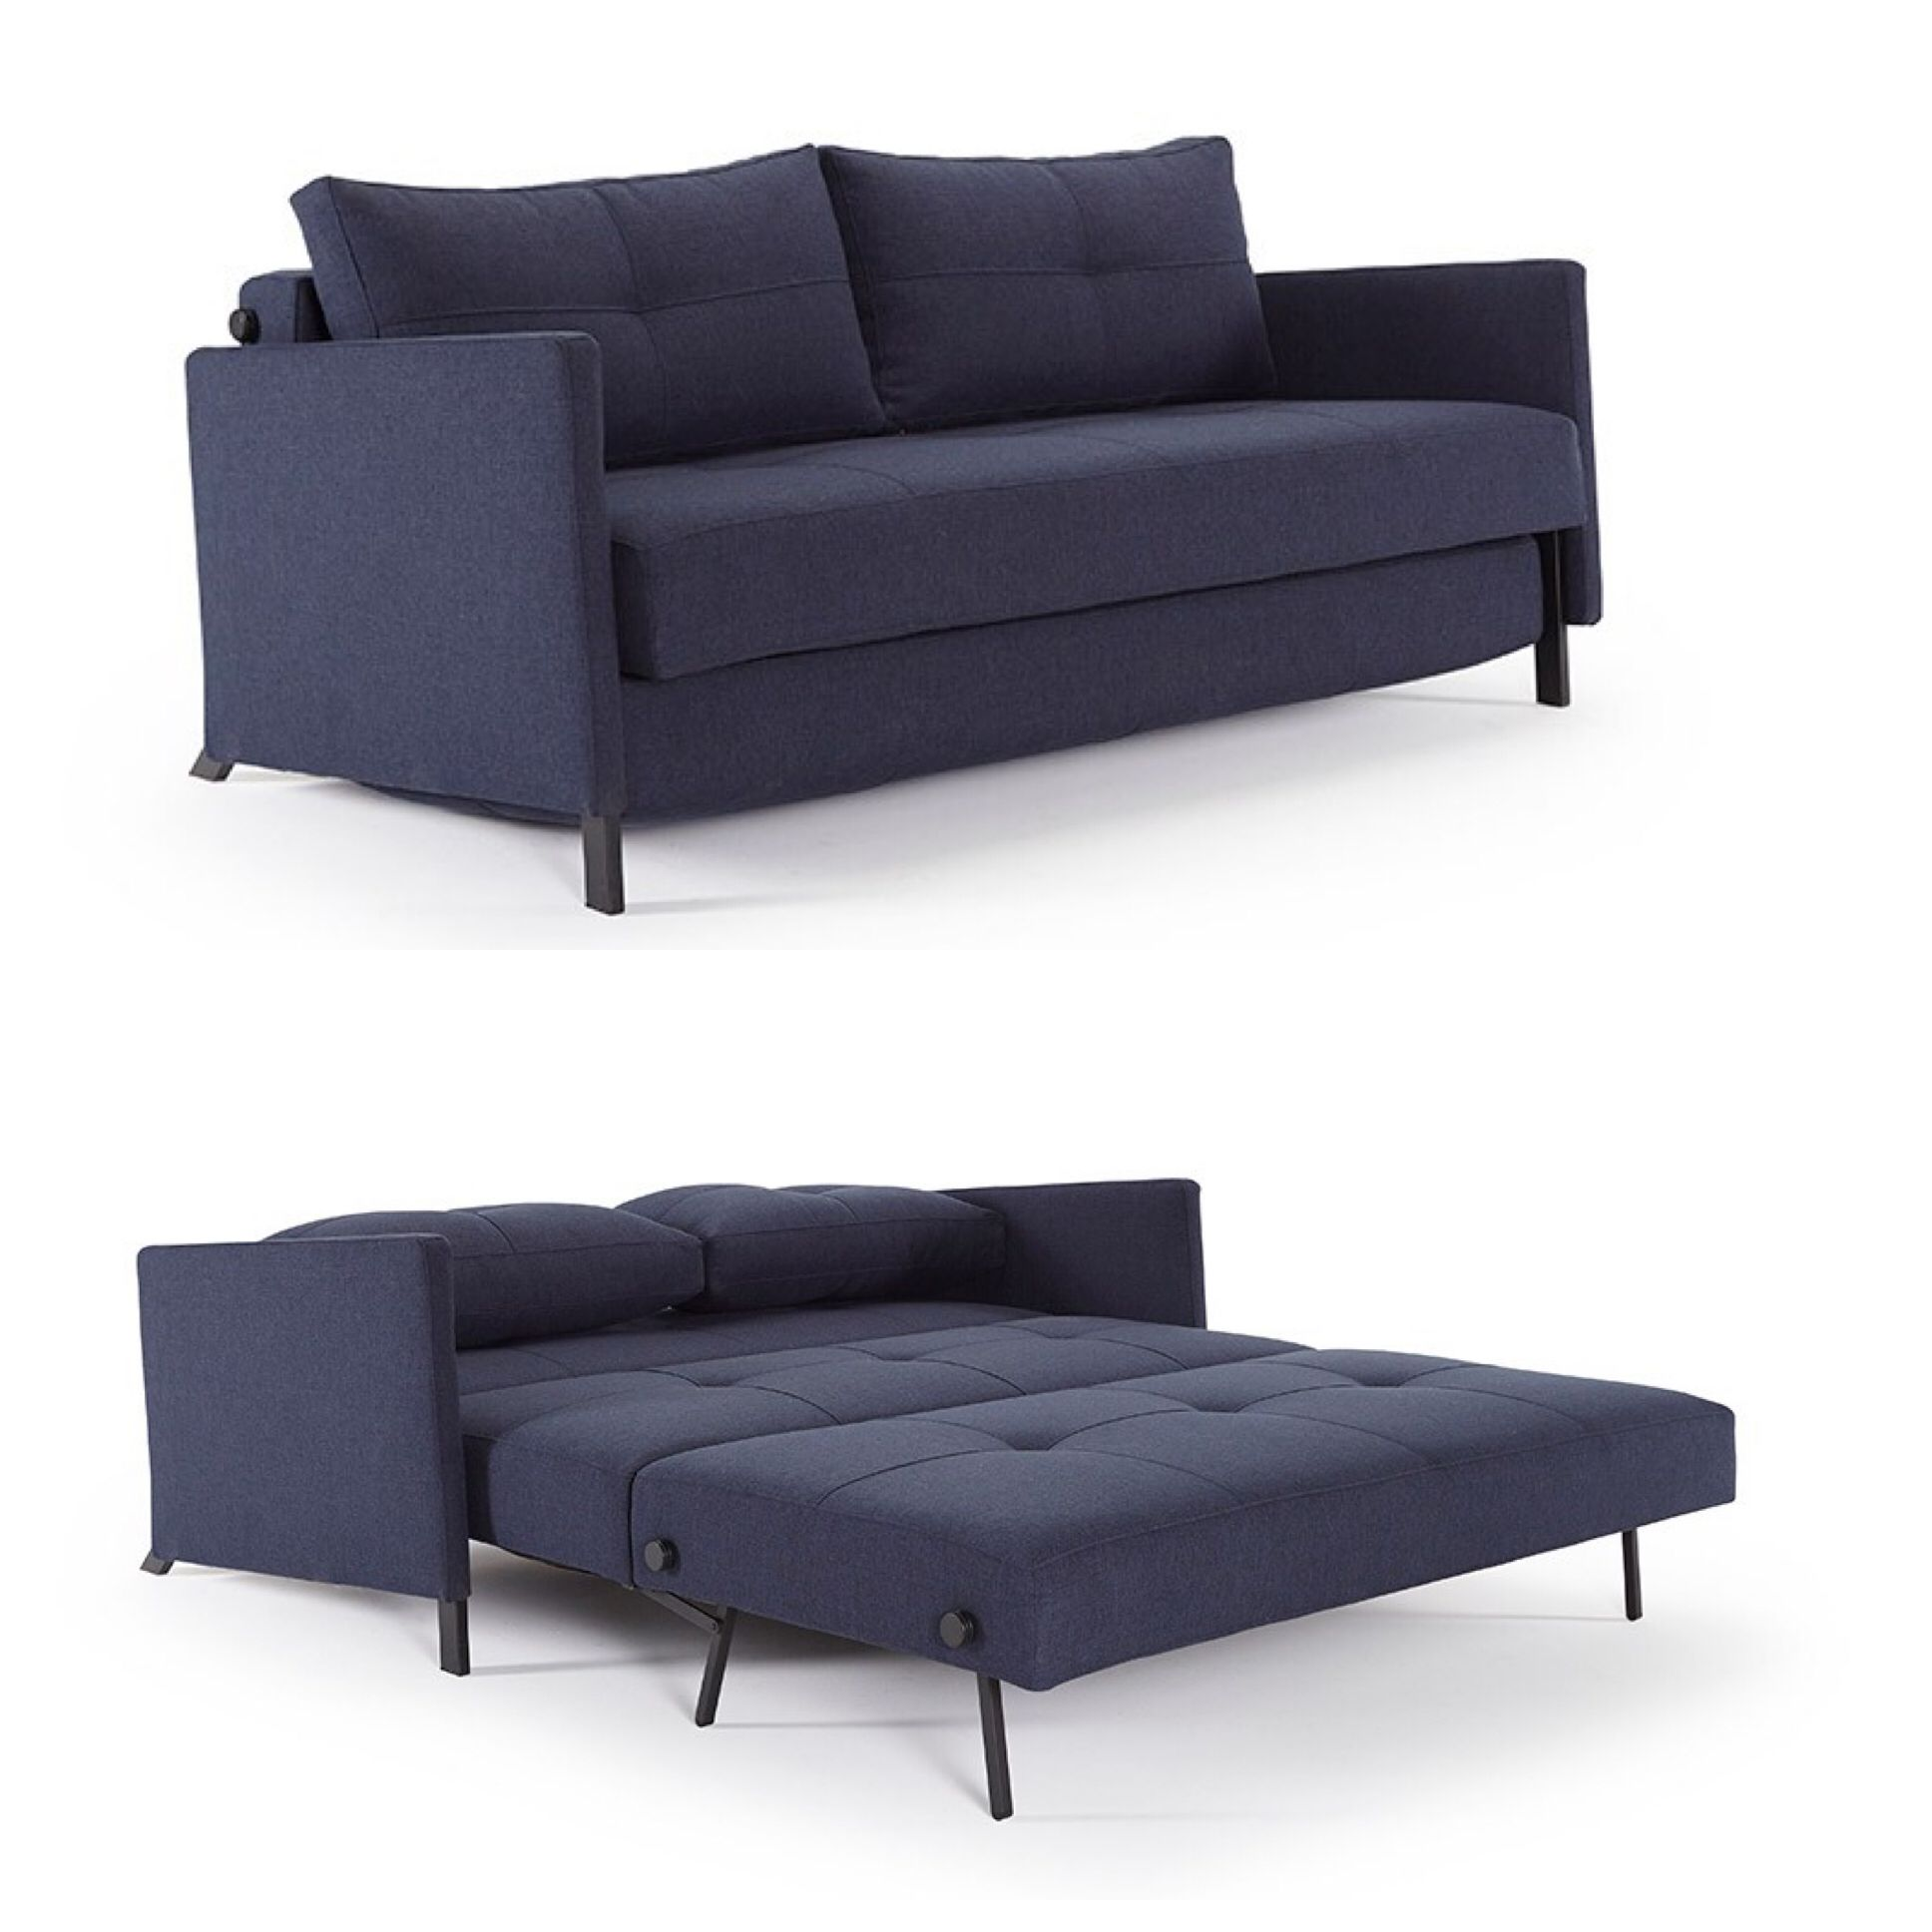 Outstanding Cubed 02 Sofa With Arms 2019 Innovation Sofas In 2019 Onthecornerstone Fun Painted Chair Ideas Images Onthecornerstoneorg